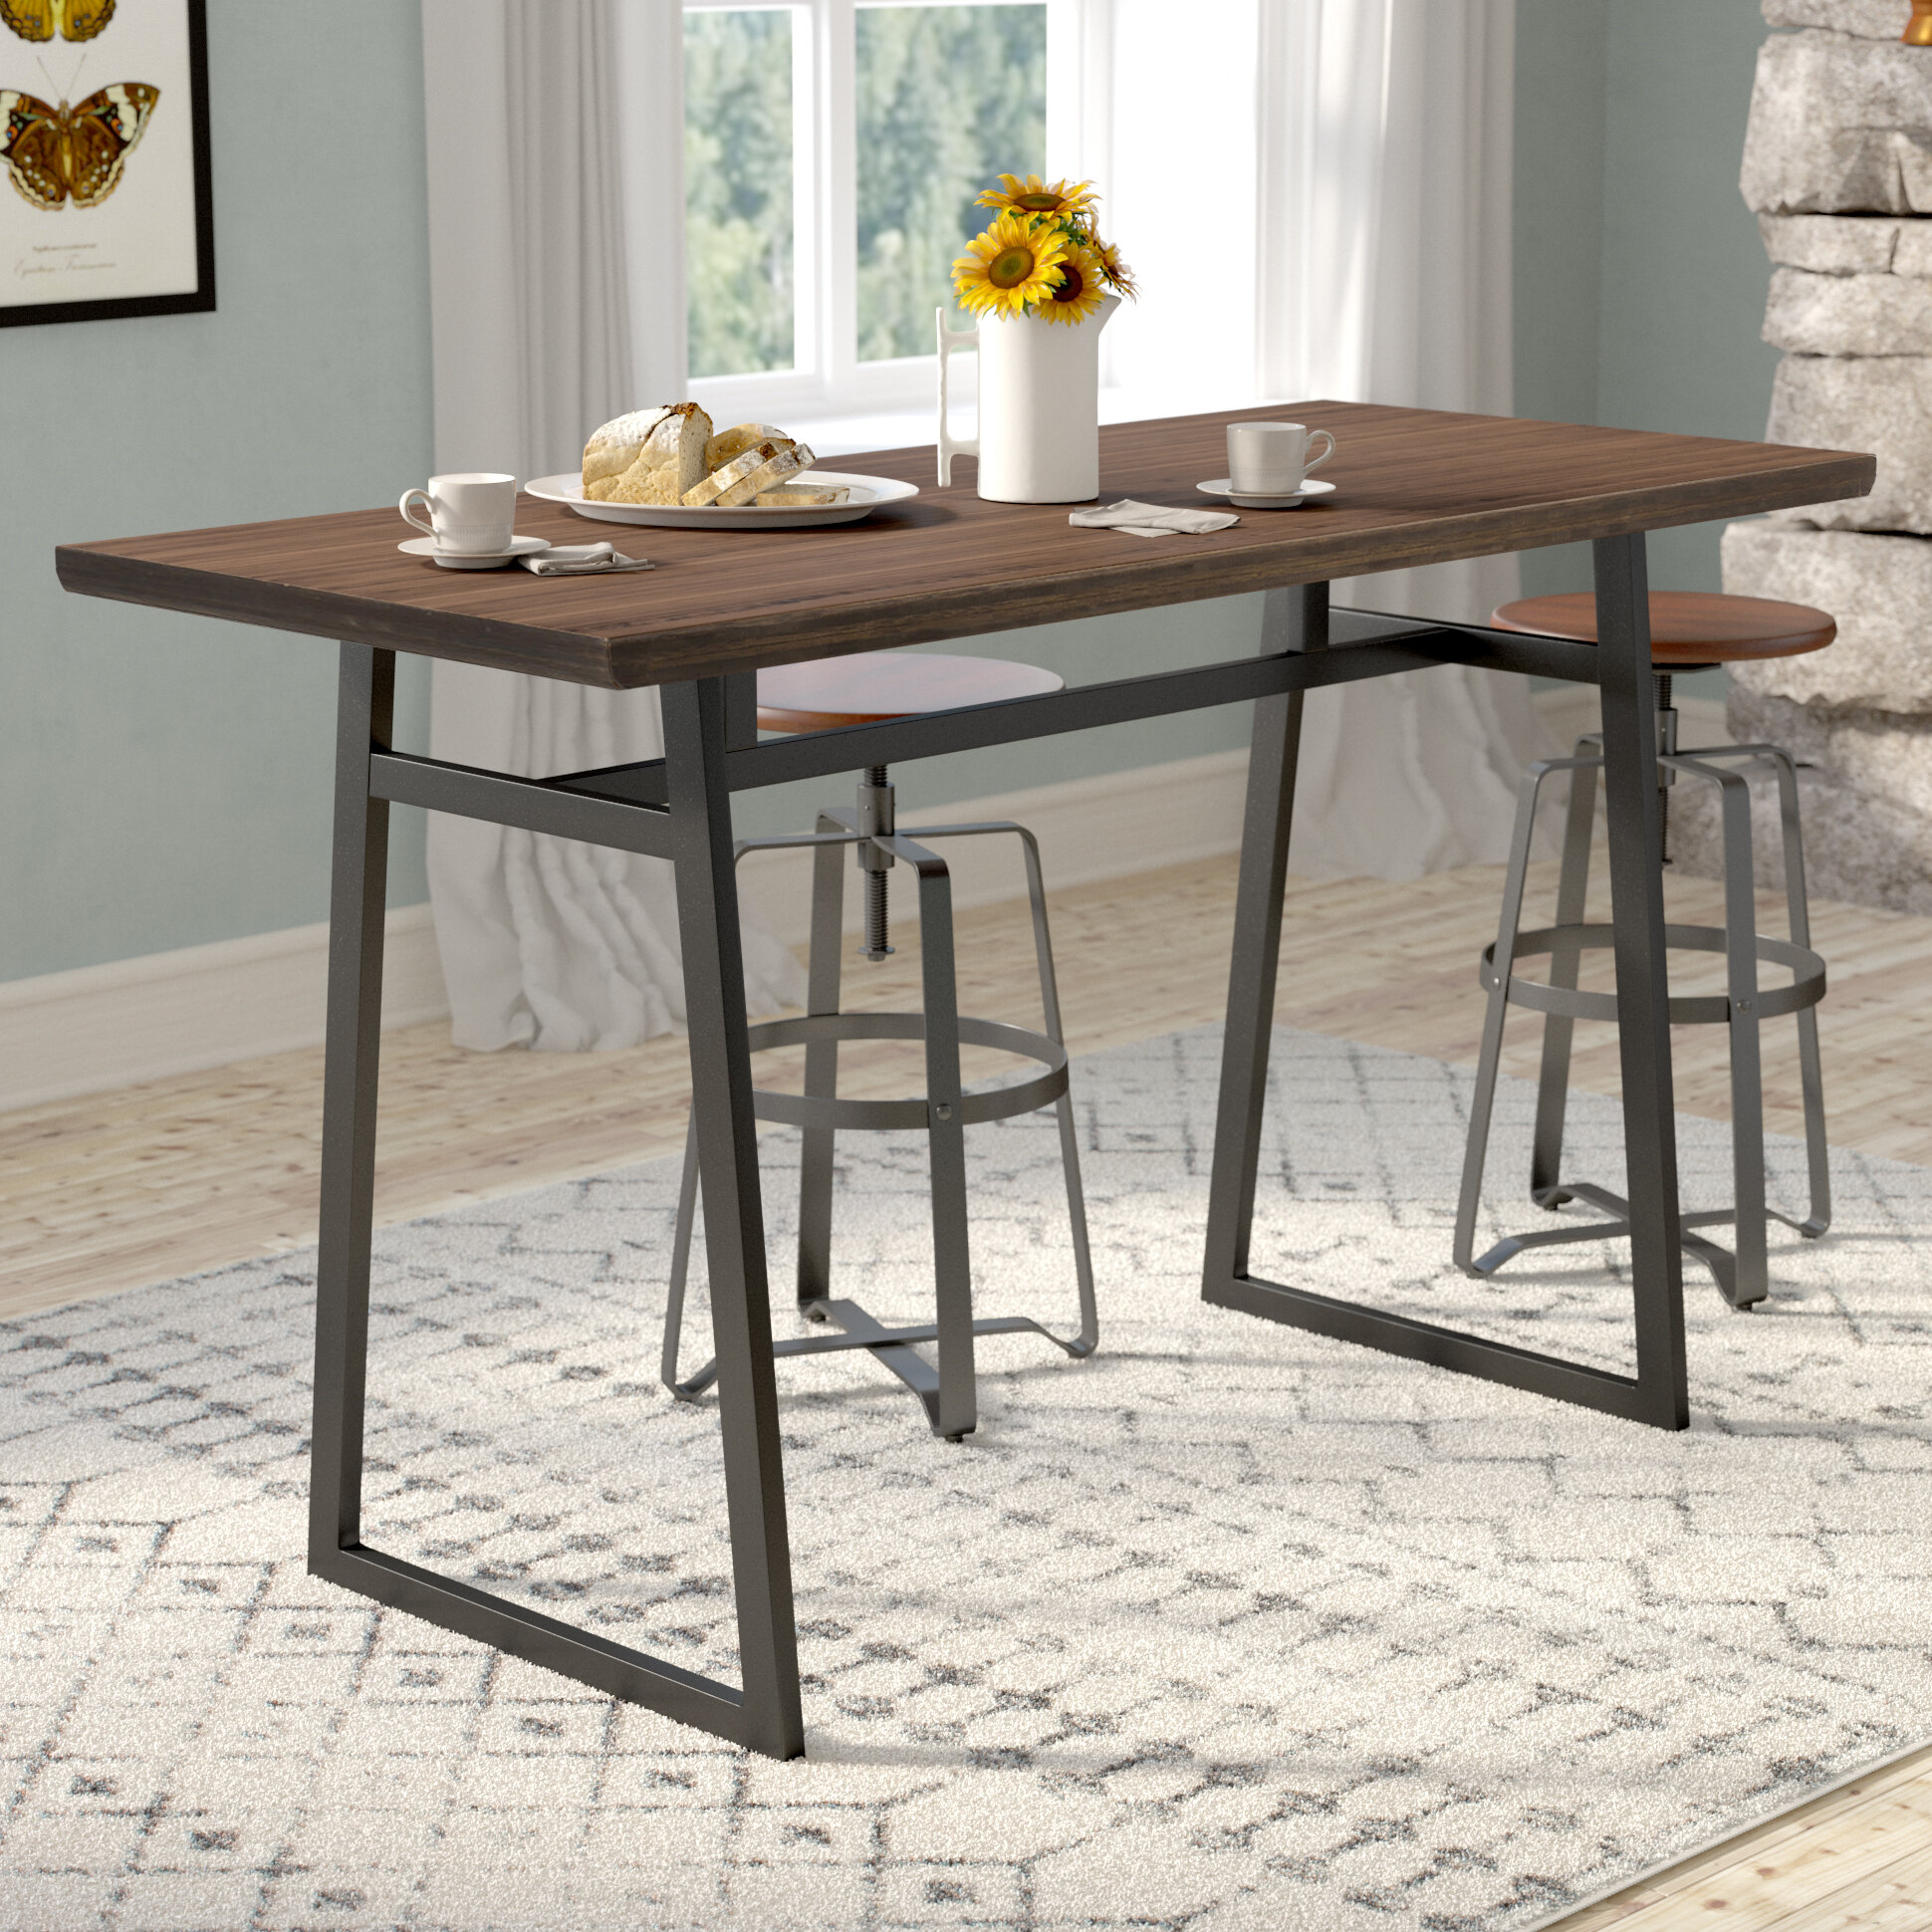 Gracie Oaks Platane Industrial Counter Height Dining Table Reviews